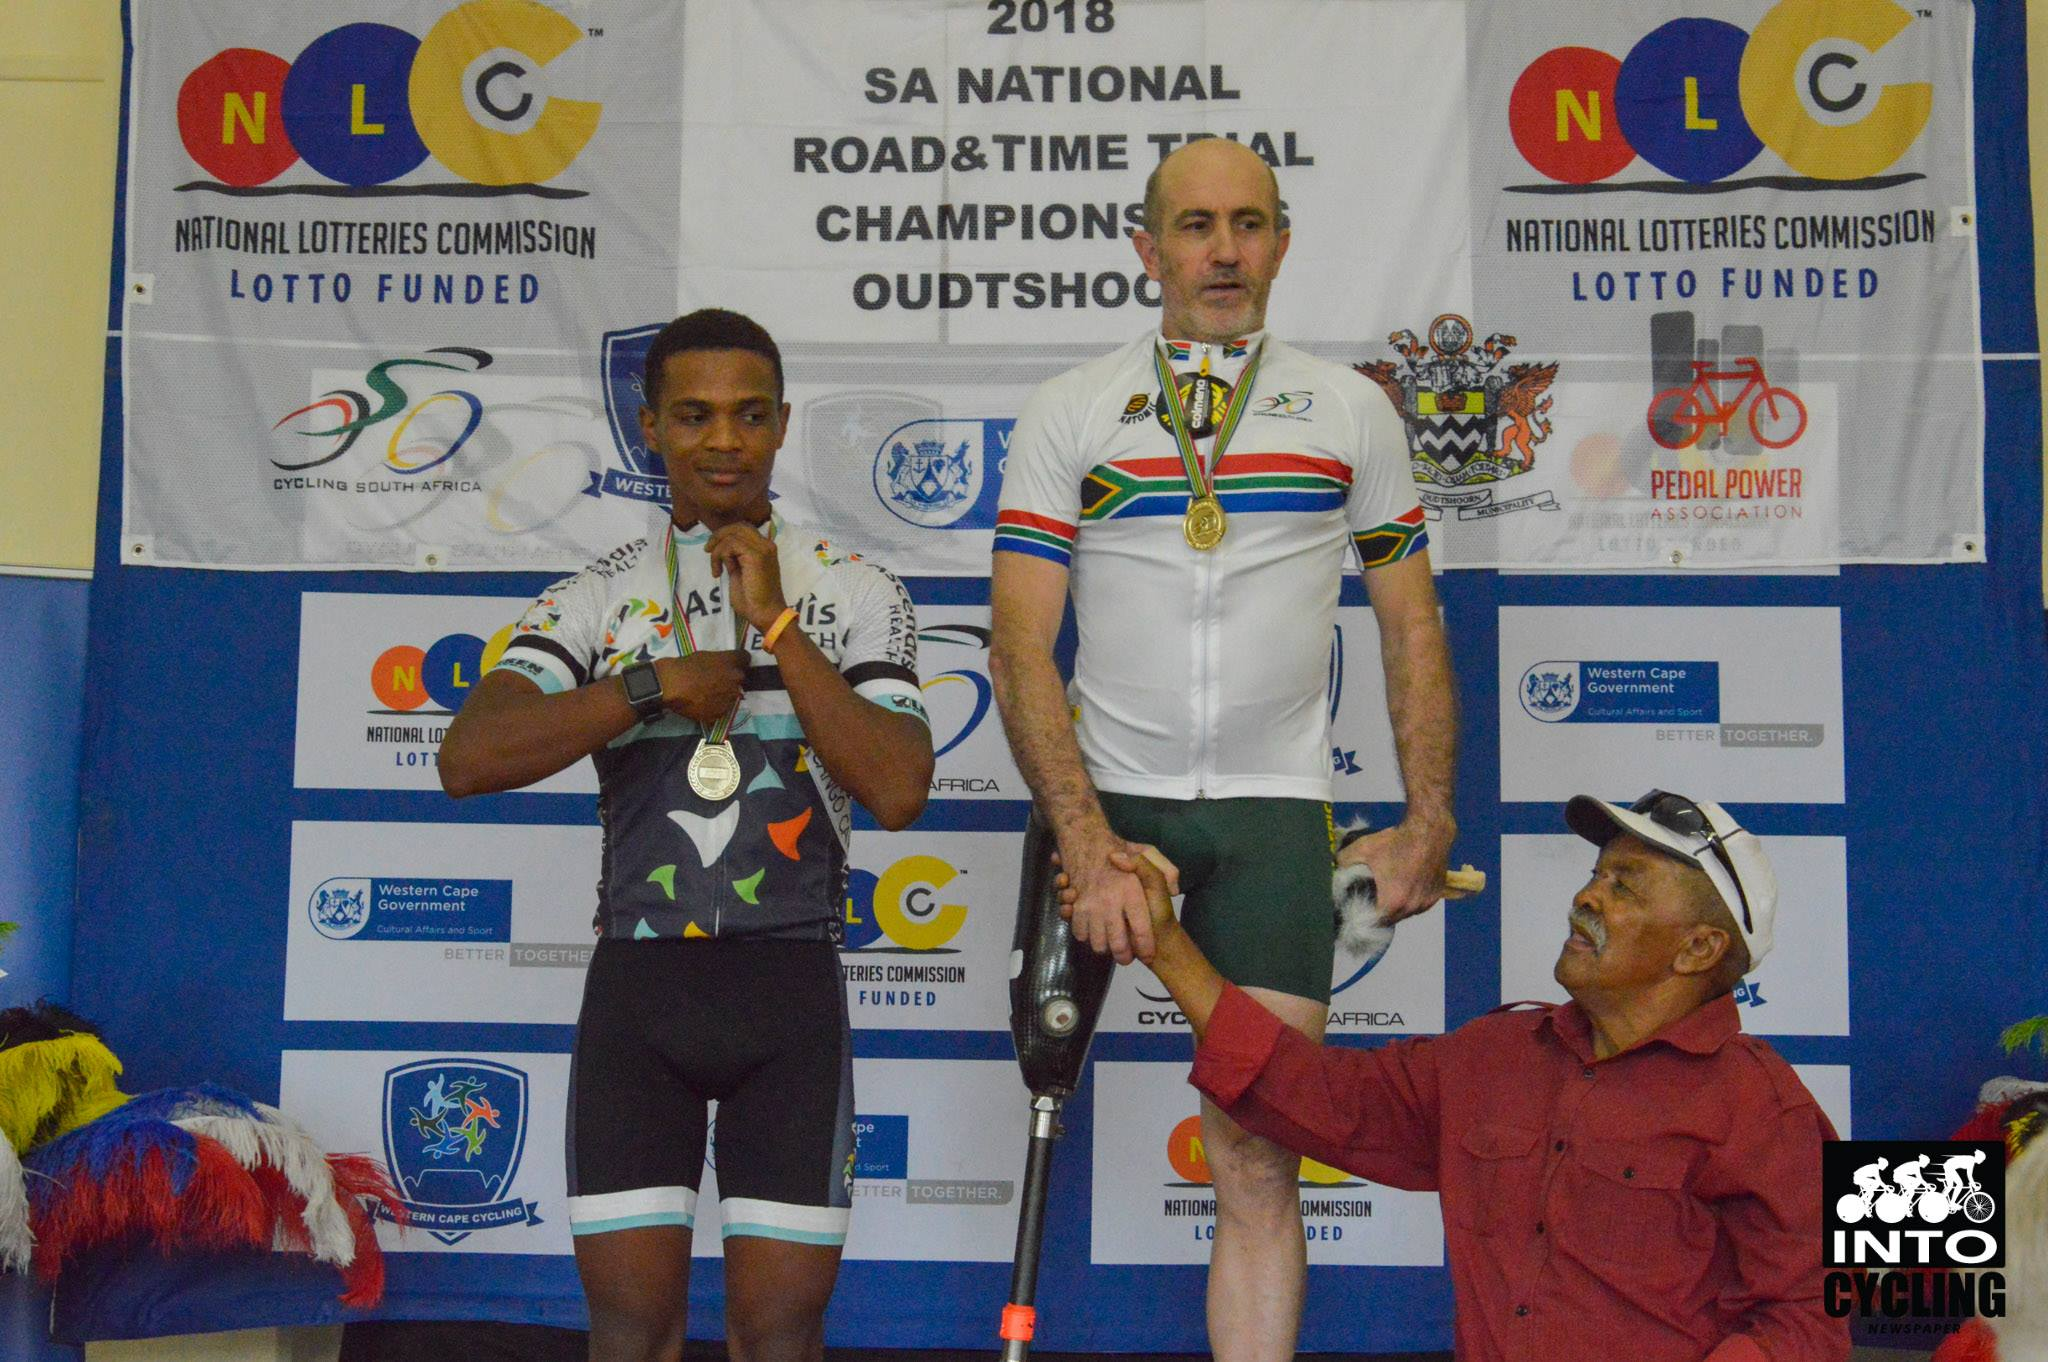 Oswald Kydd won the Time Trial in the C2 class with Phillo Verlaat claiming the silver medal at the 2018 SA   National Road and Para-cycling Championships, which took place in the streets of Oudtshoorn from 6-11 February. 📷 www.intocycling.co.za